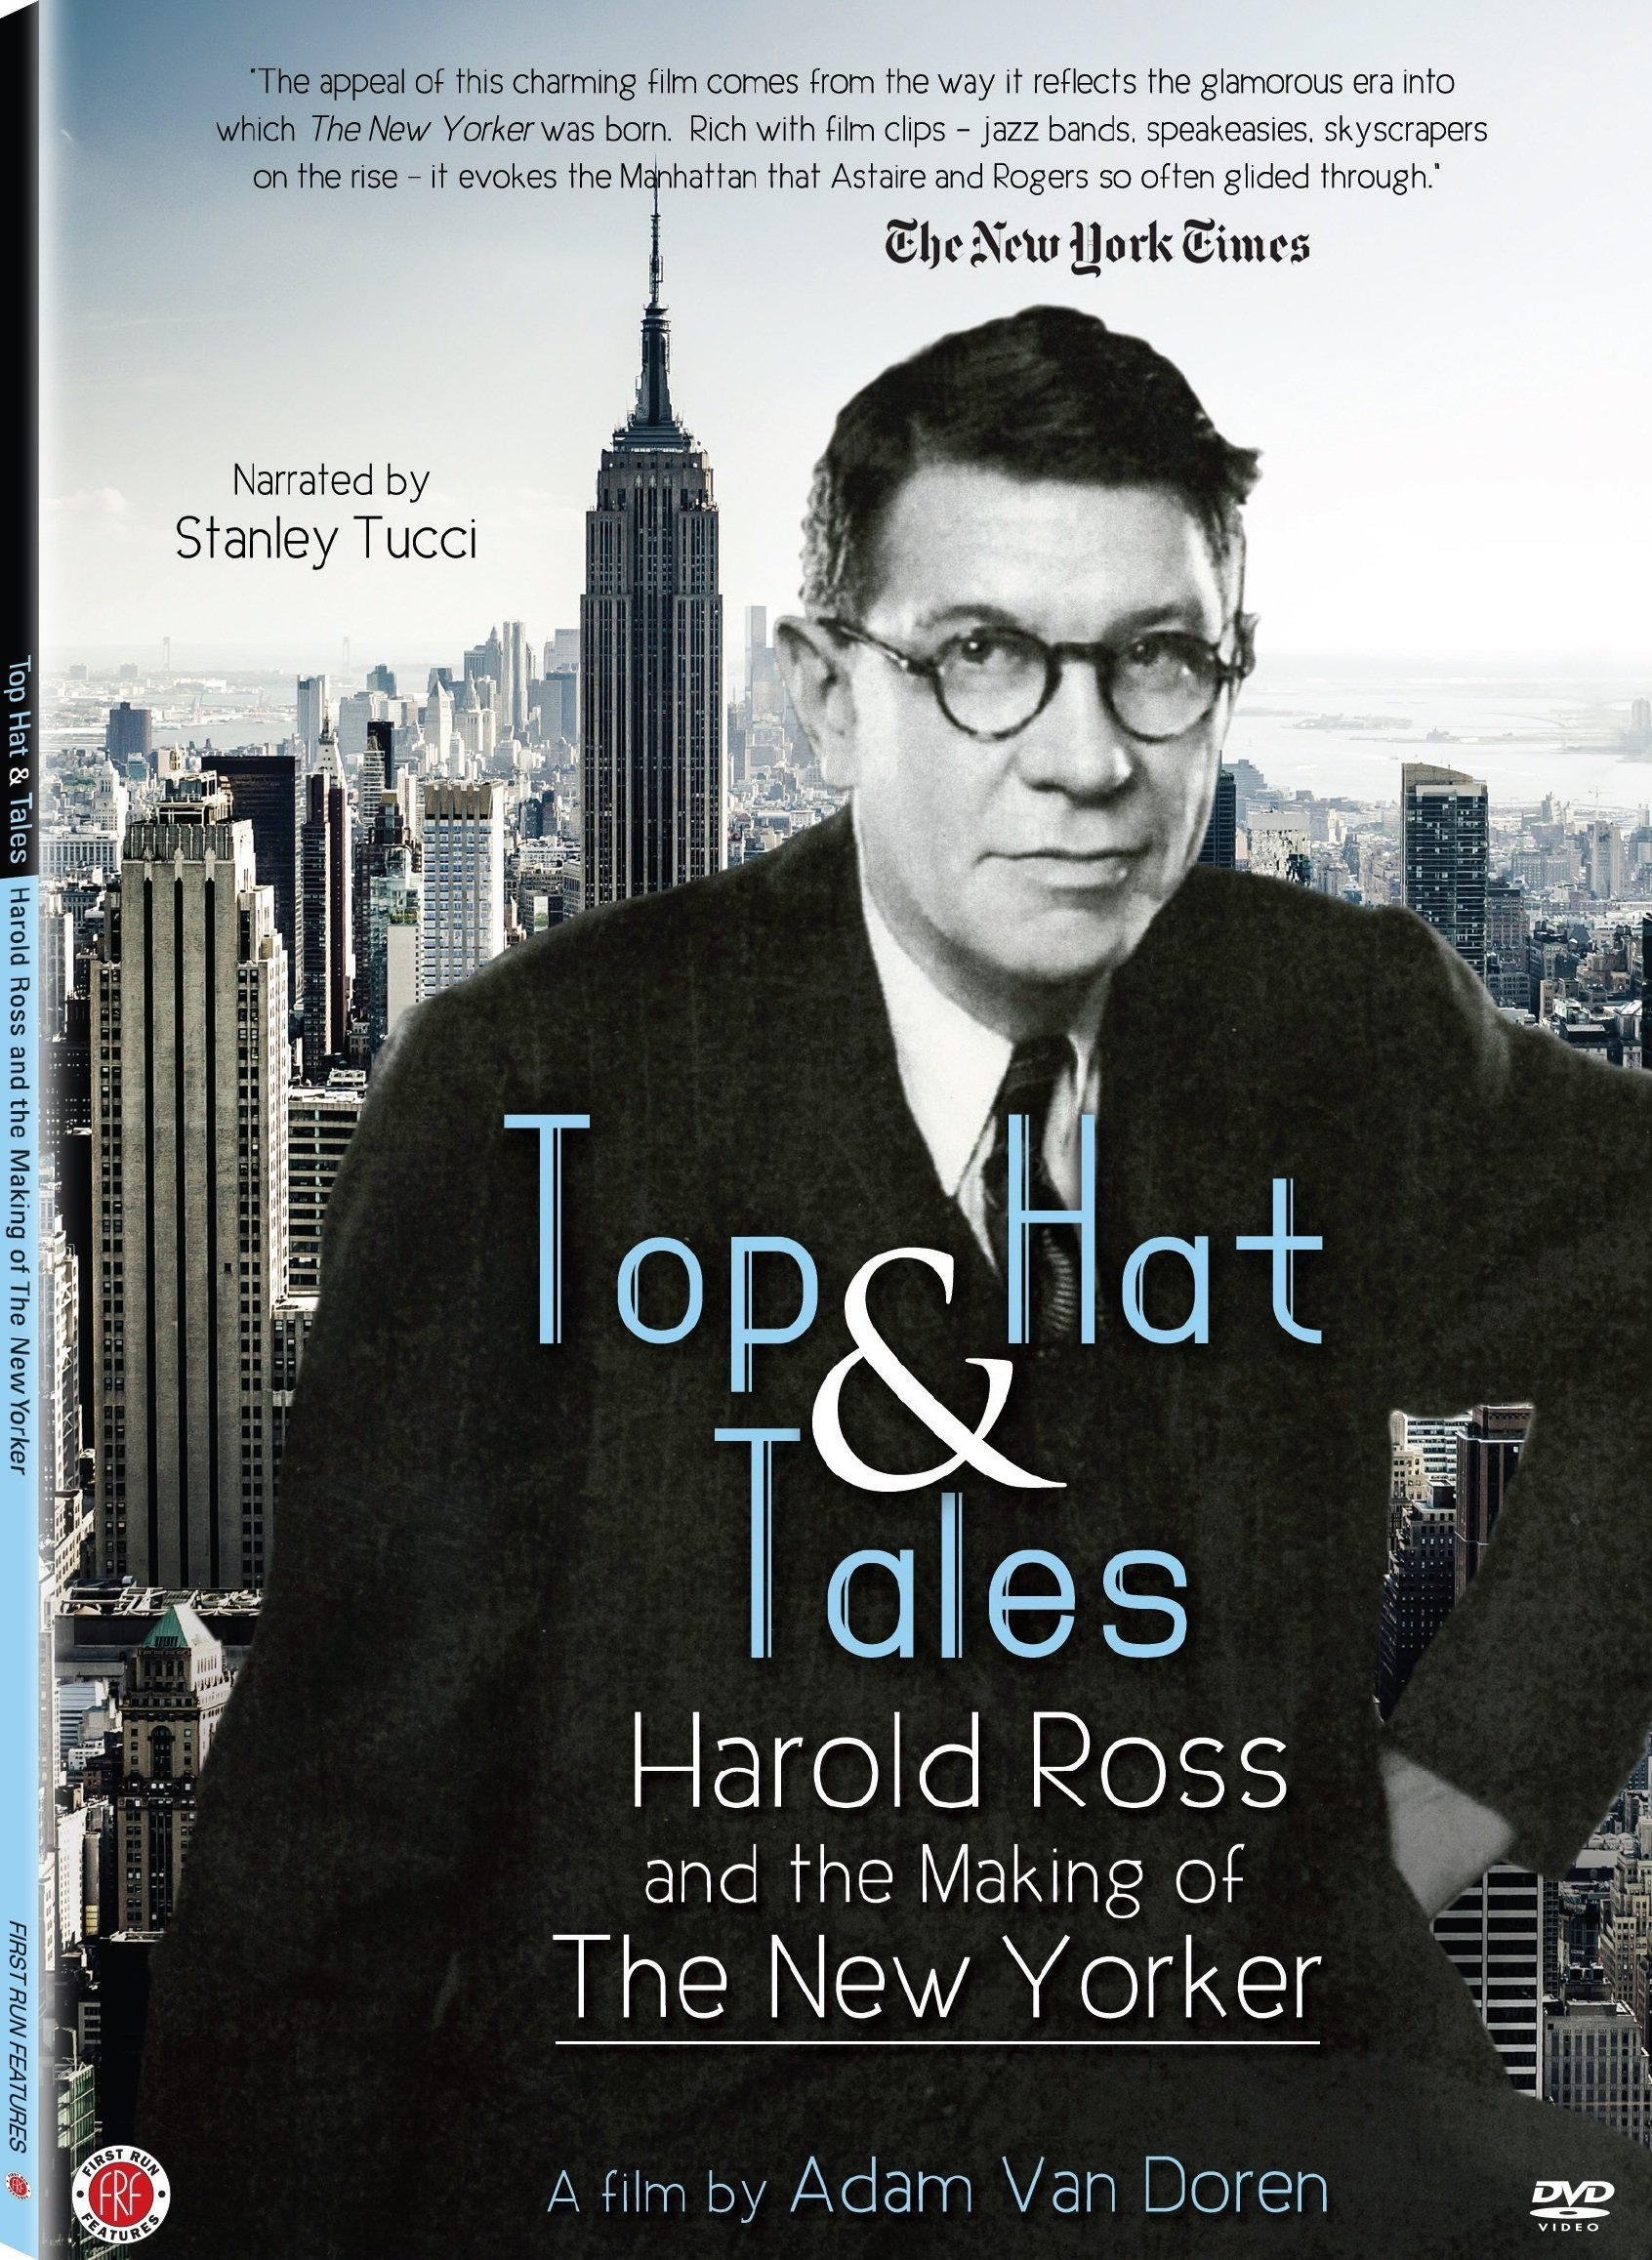 DVD : Stanley Tucci - Top Hat & Tales: Harold Ross And The Making Of The New Yorker (Full Frame)